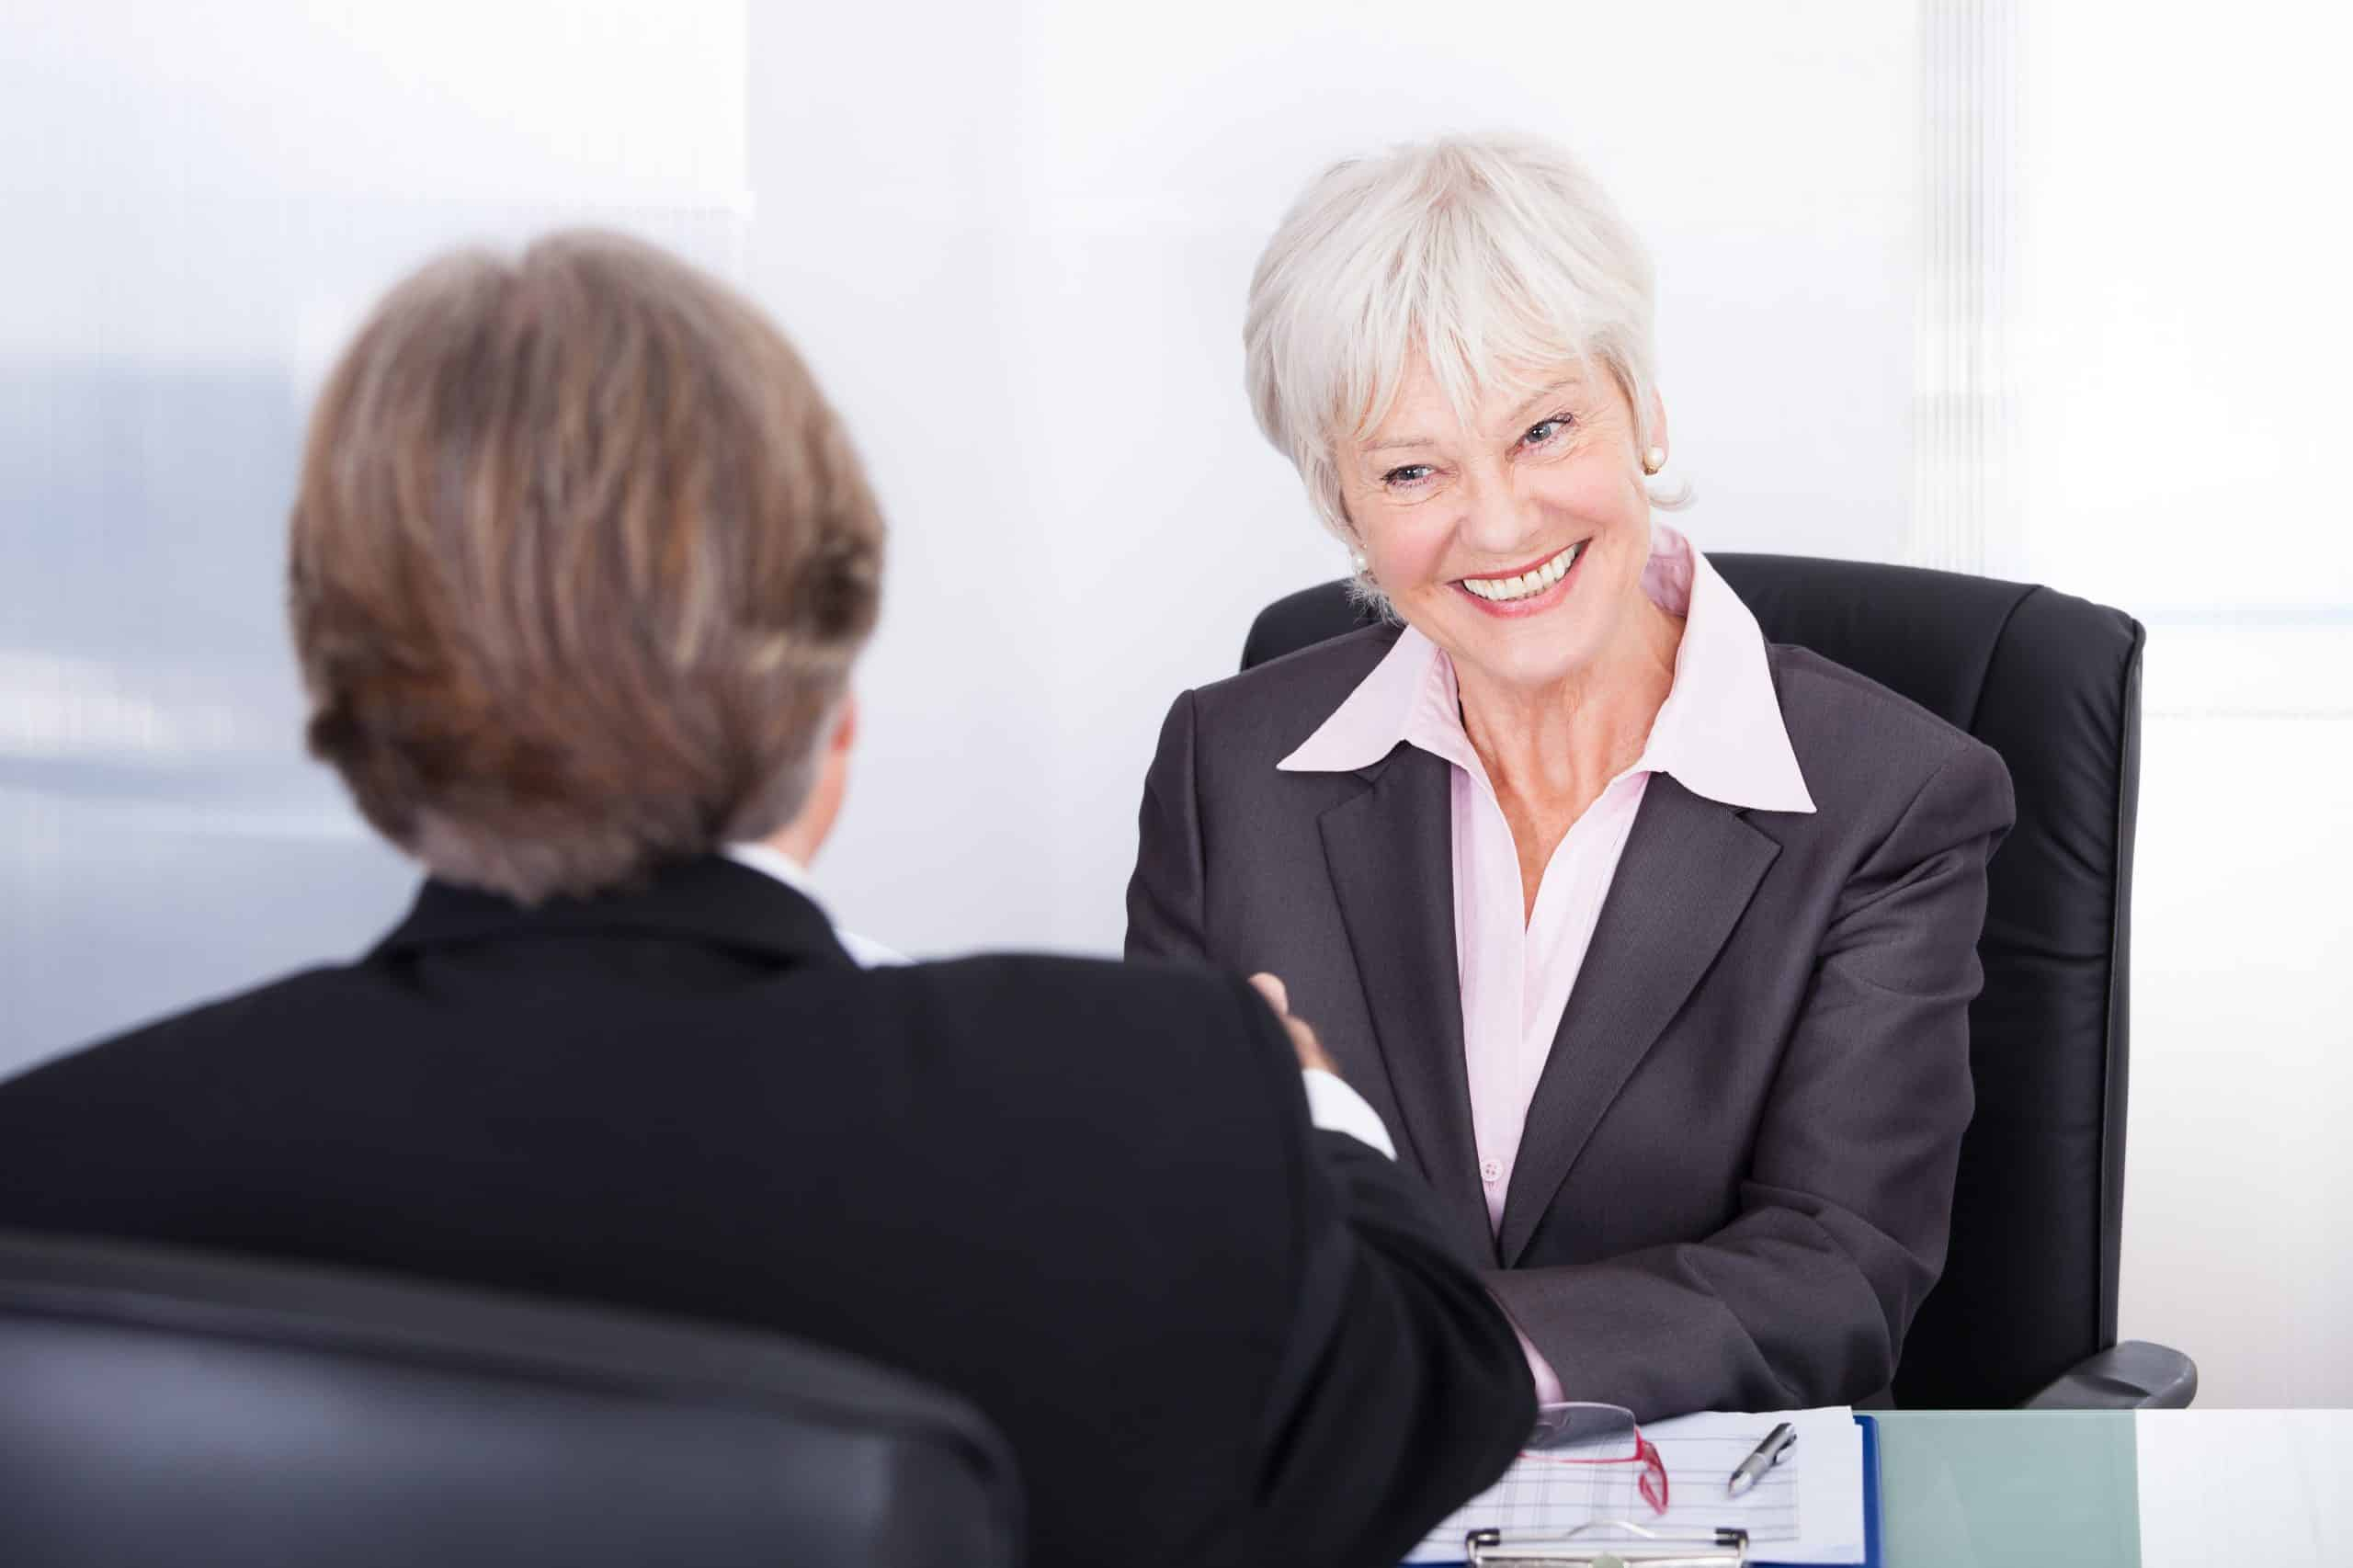 Mature Businesswoman And Businessman Discussing At Workplace